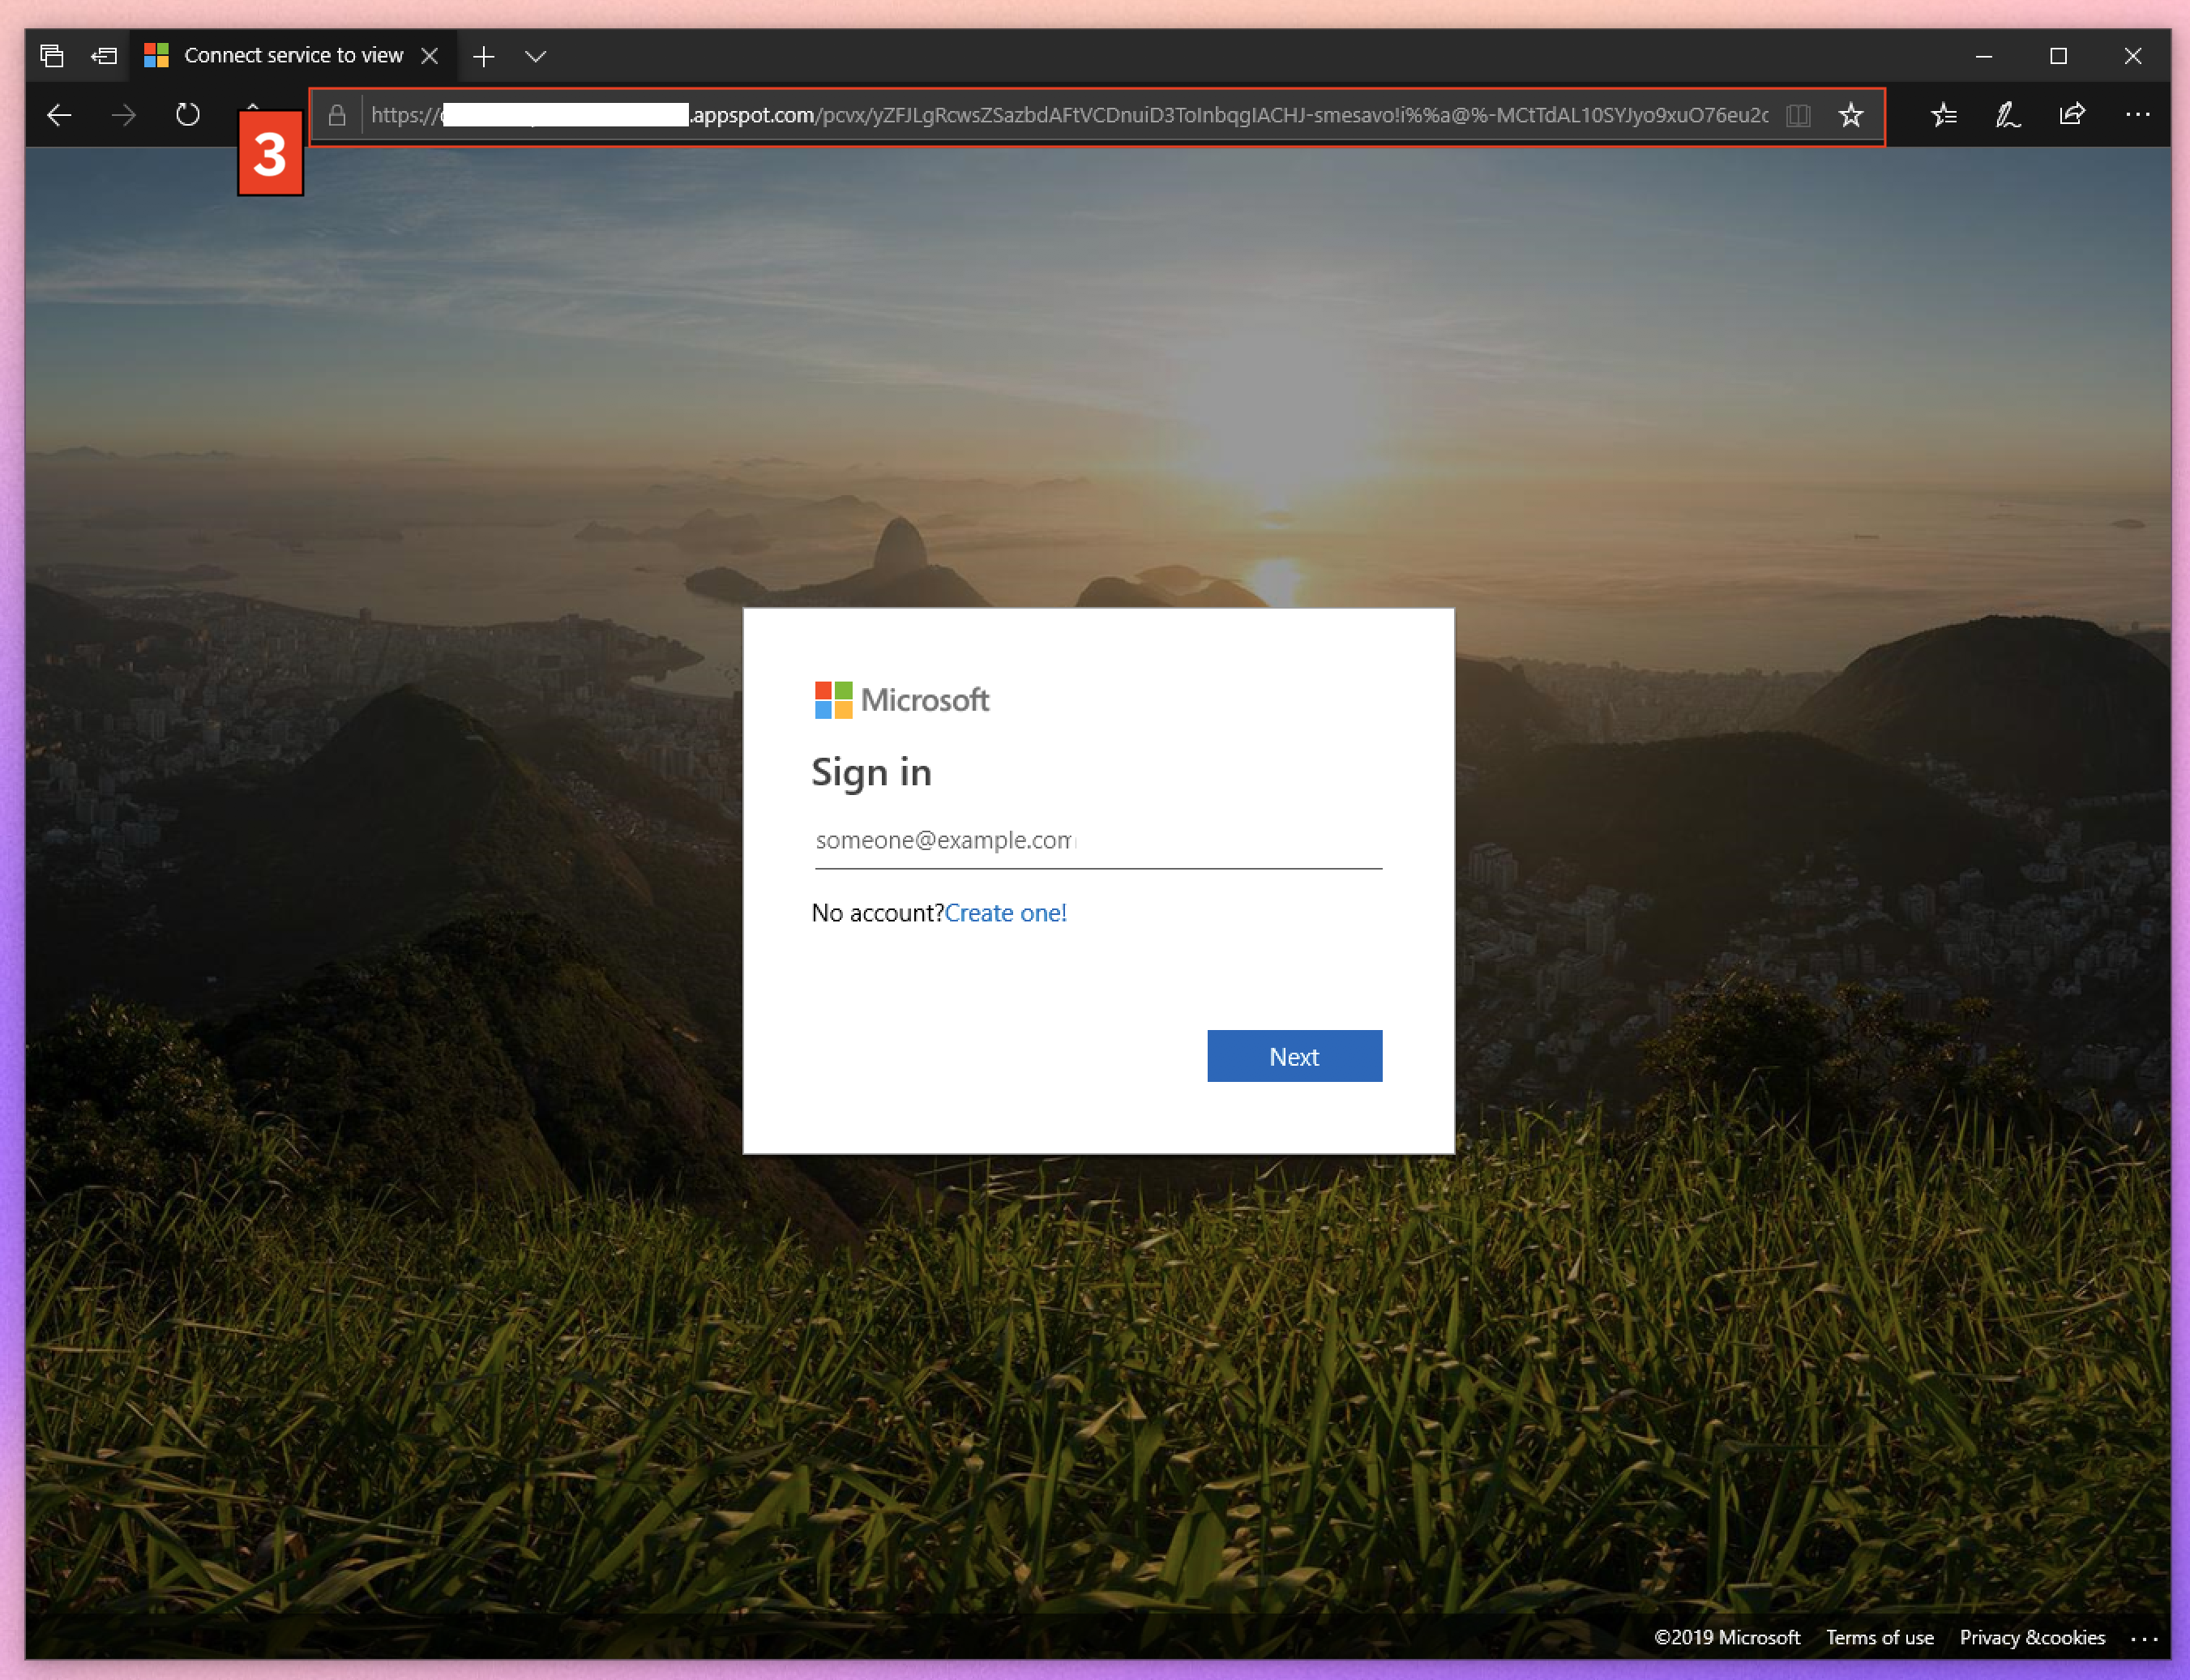 a fake microsoft login page with a .appSpot.com url with a long string of characters in it